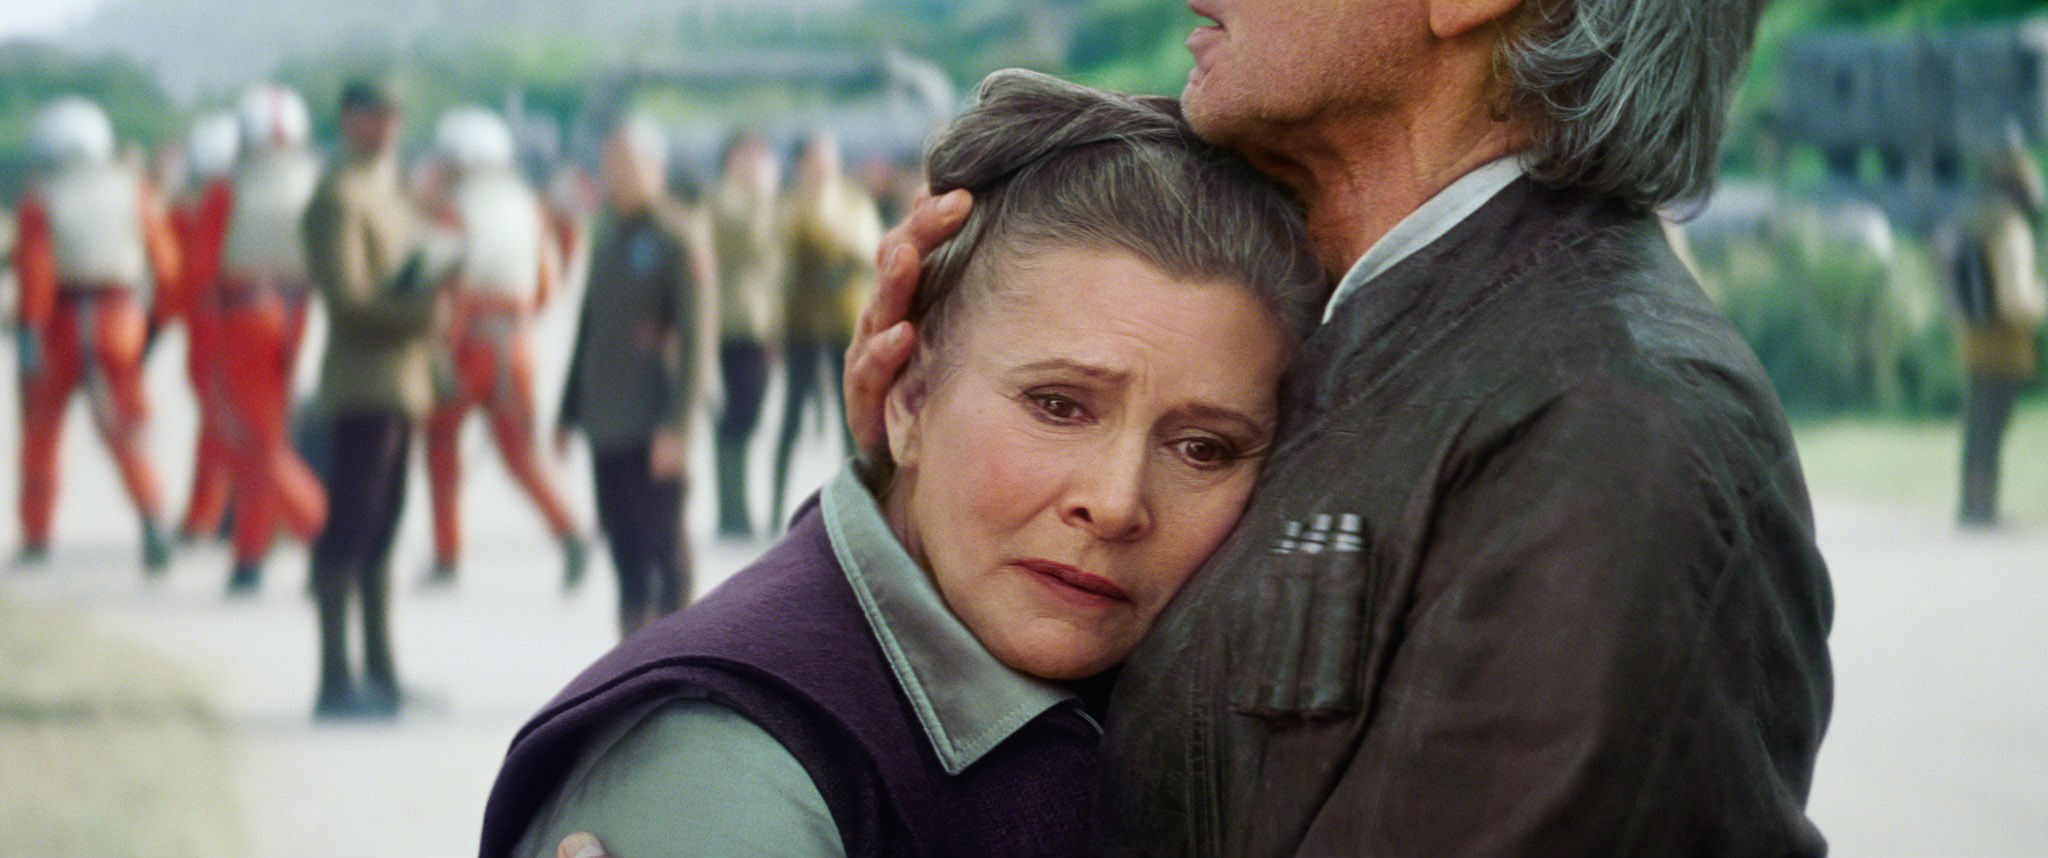 Carrie Fisher General Leia Harrison Ford Han Solo Star Wars: The Force Awakens